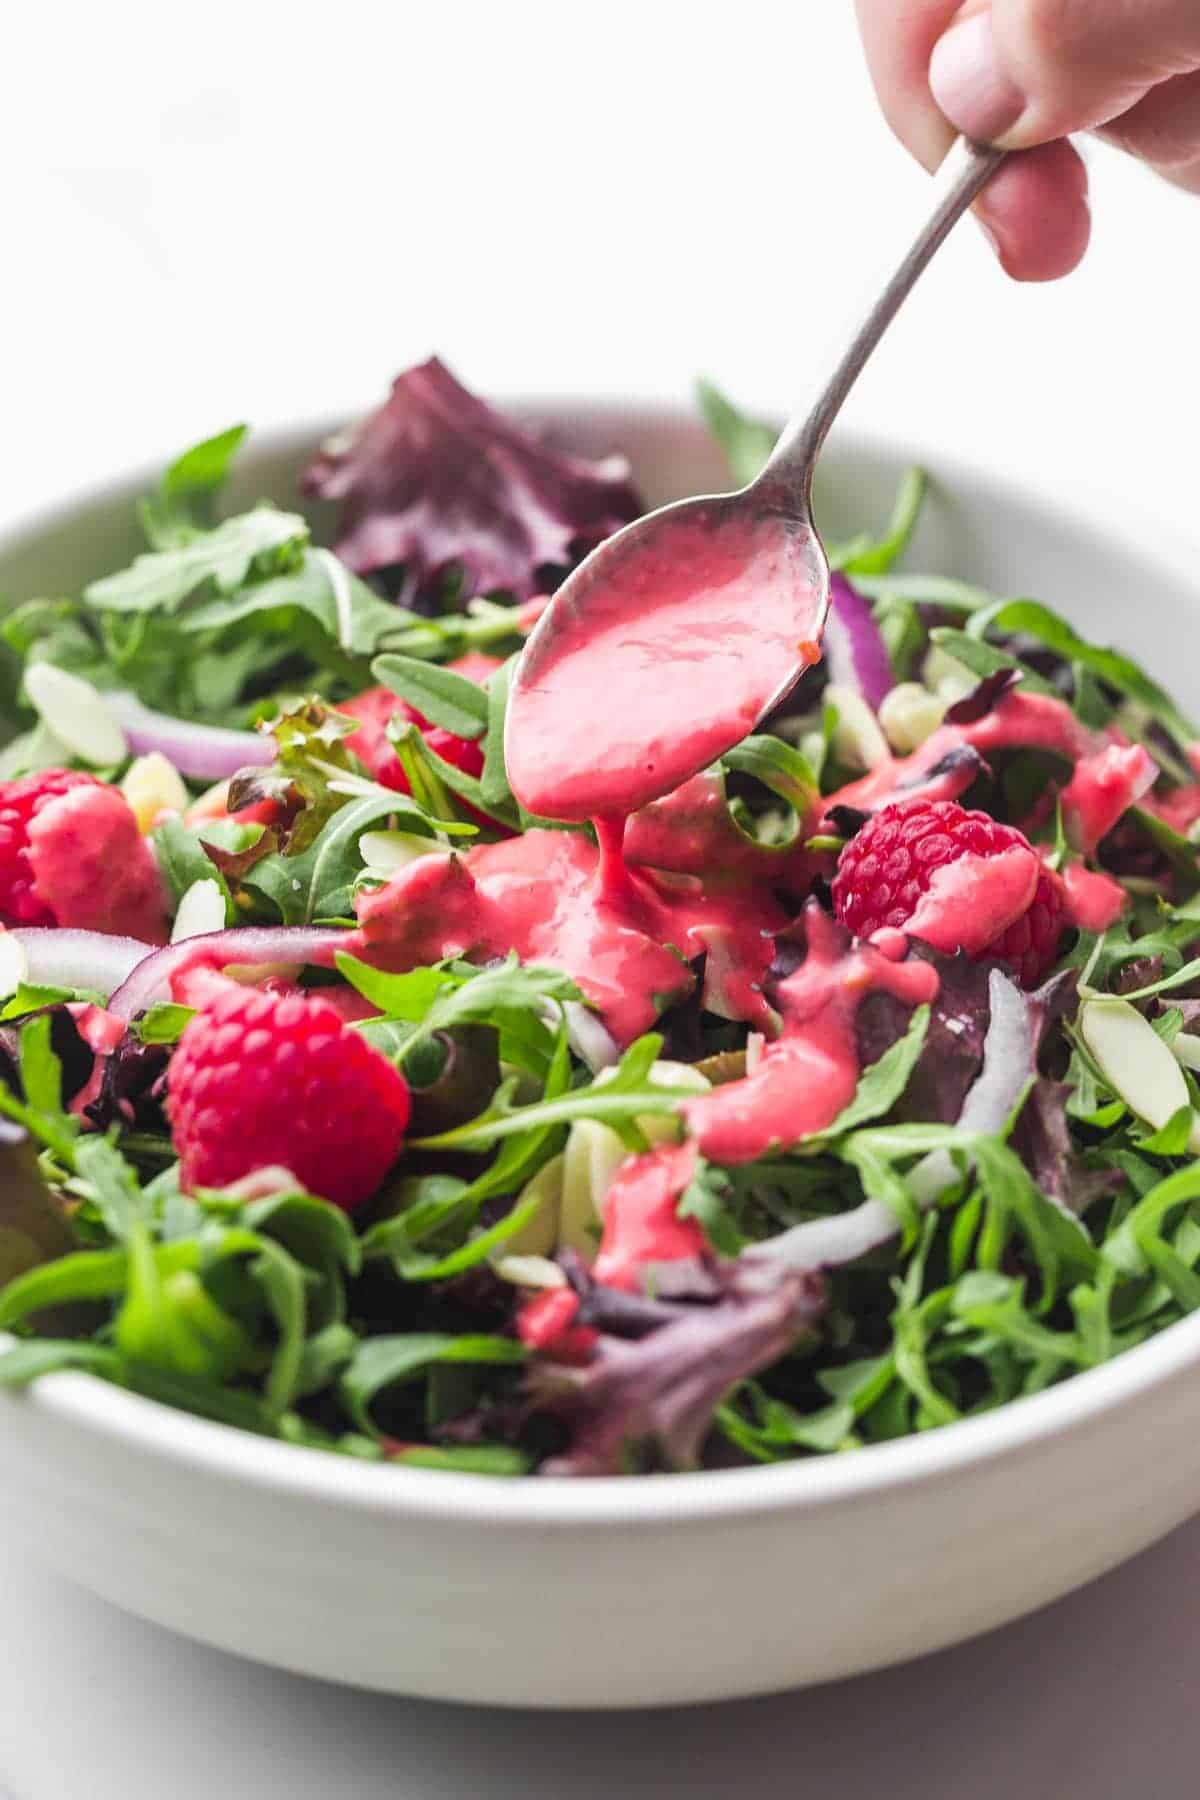 Drizzling Raspberry Vinaigrette over a mixed leaf salad with a metal teaspoon